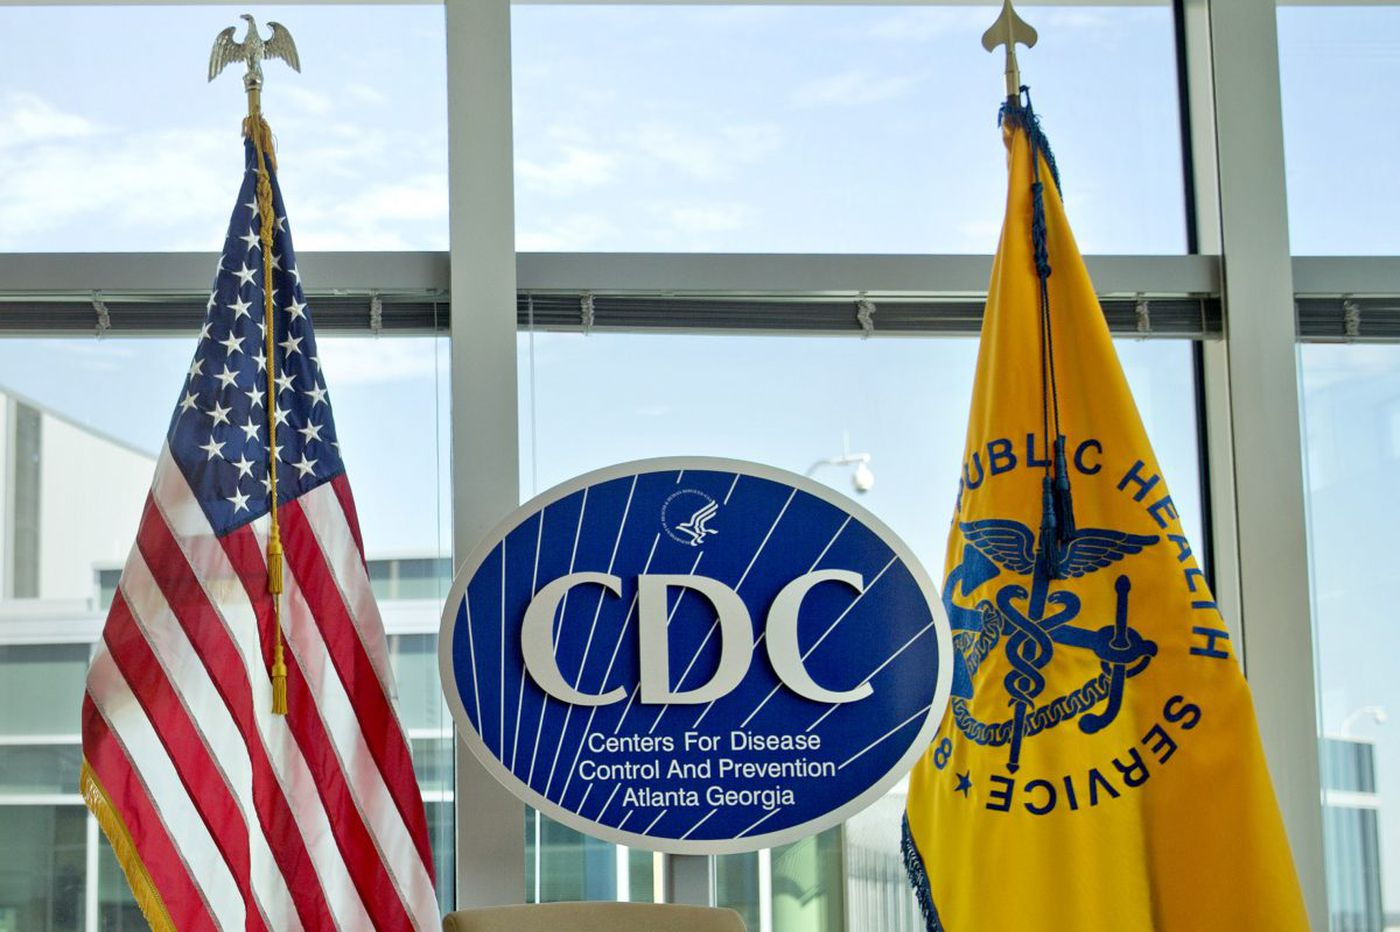 CDC word ban: Public health is jeopardized when individuality is ignored | Opinion